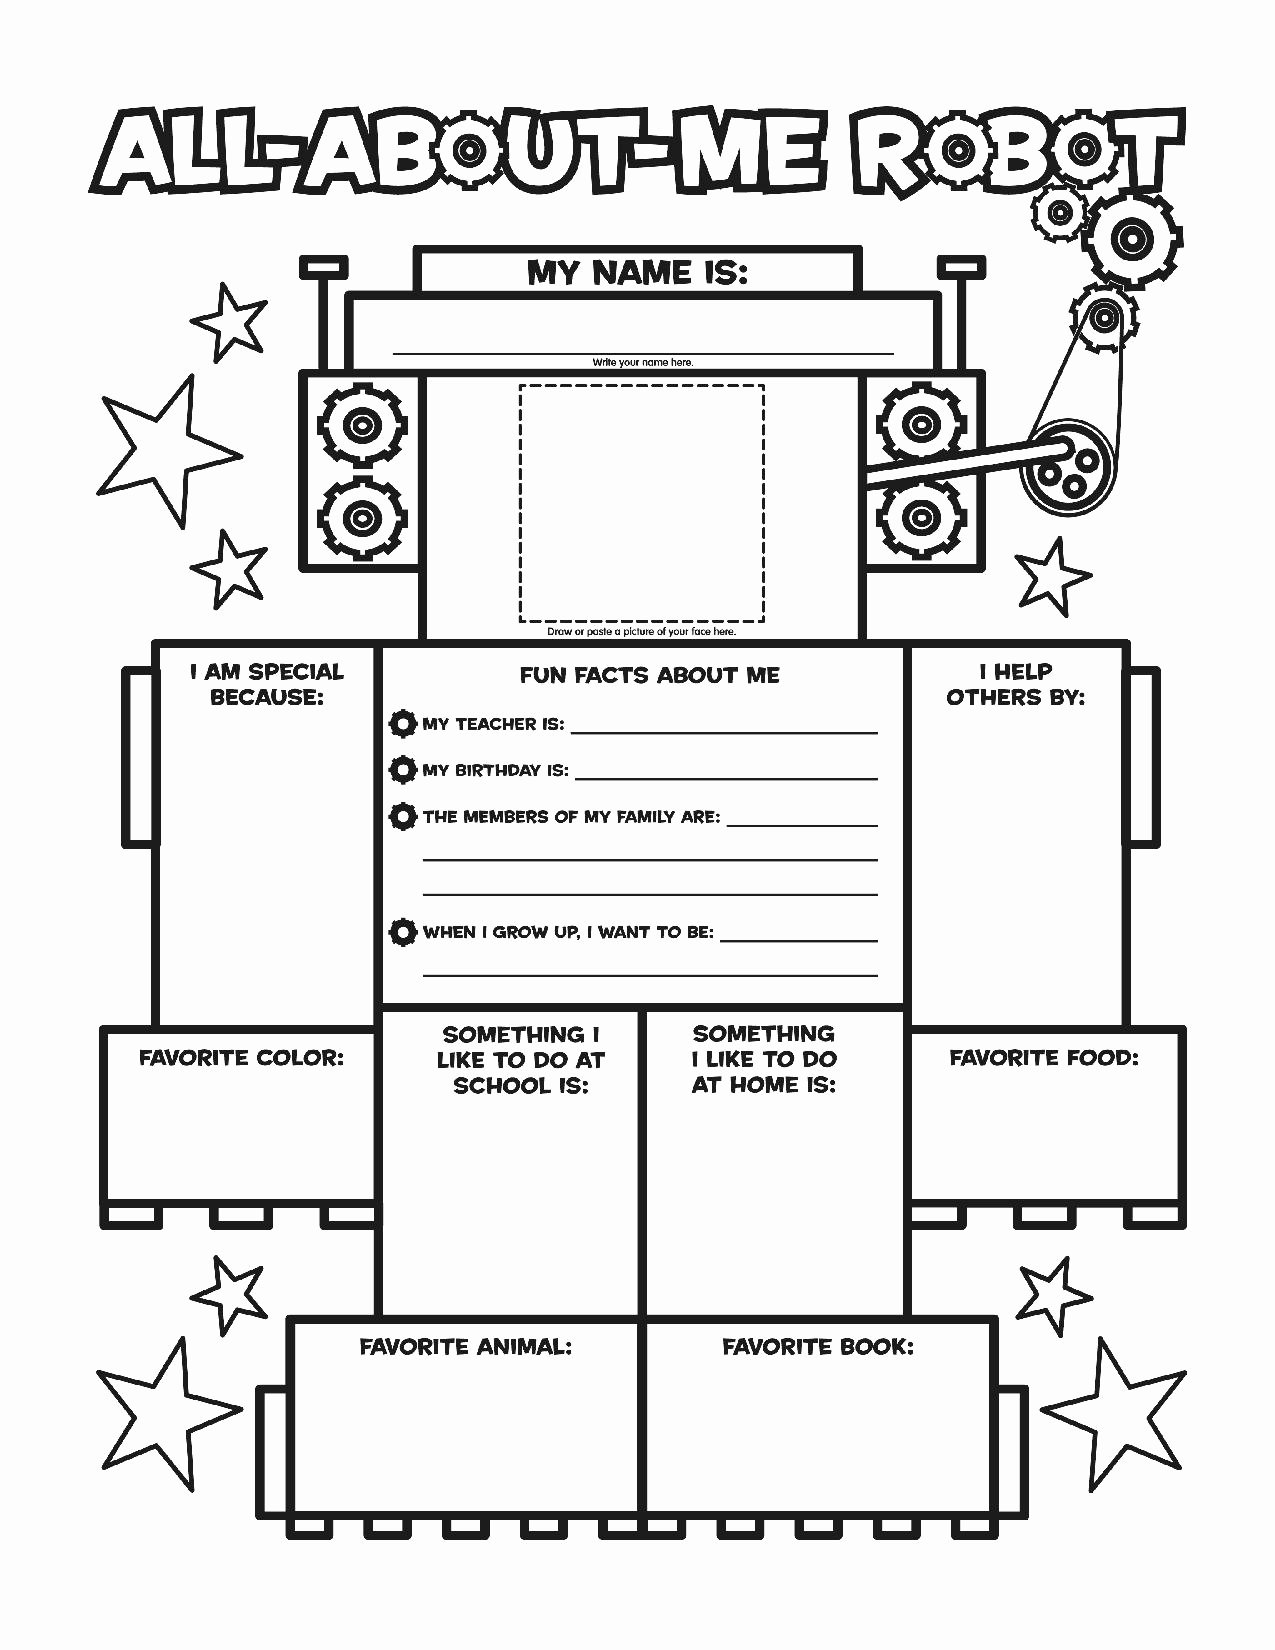 All About Me Worksheet Preschool Beautiful All About Me Worksheetstake the Pen